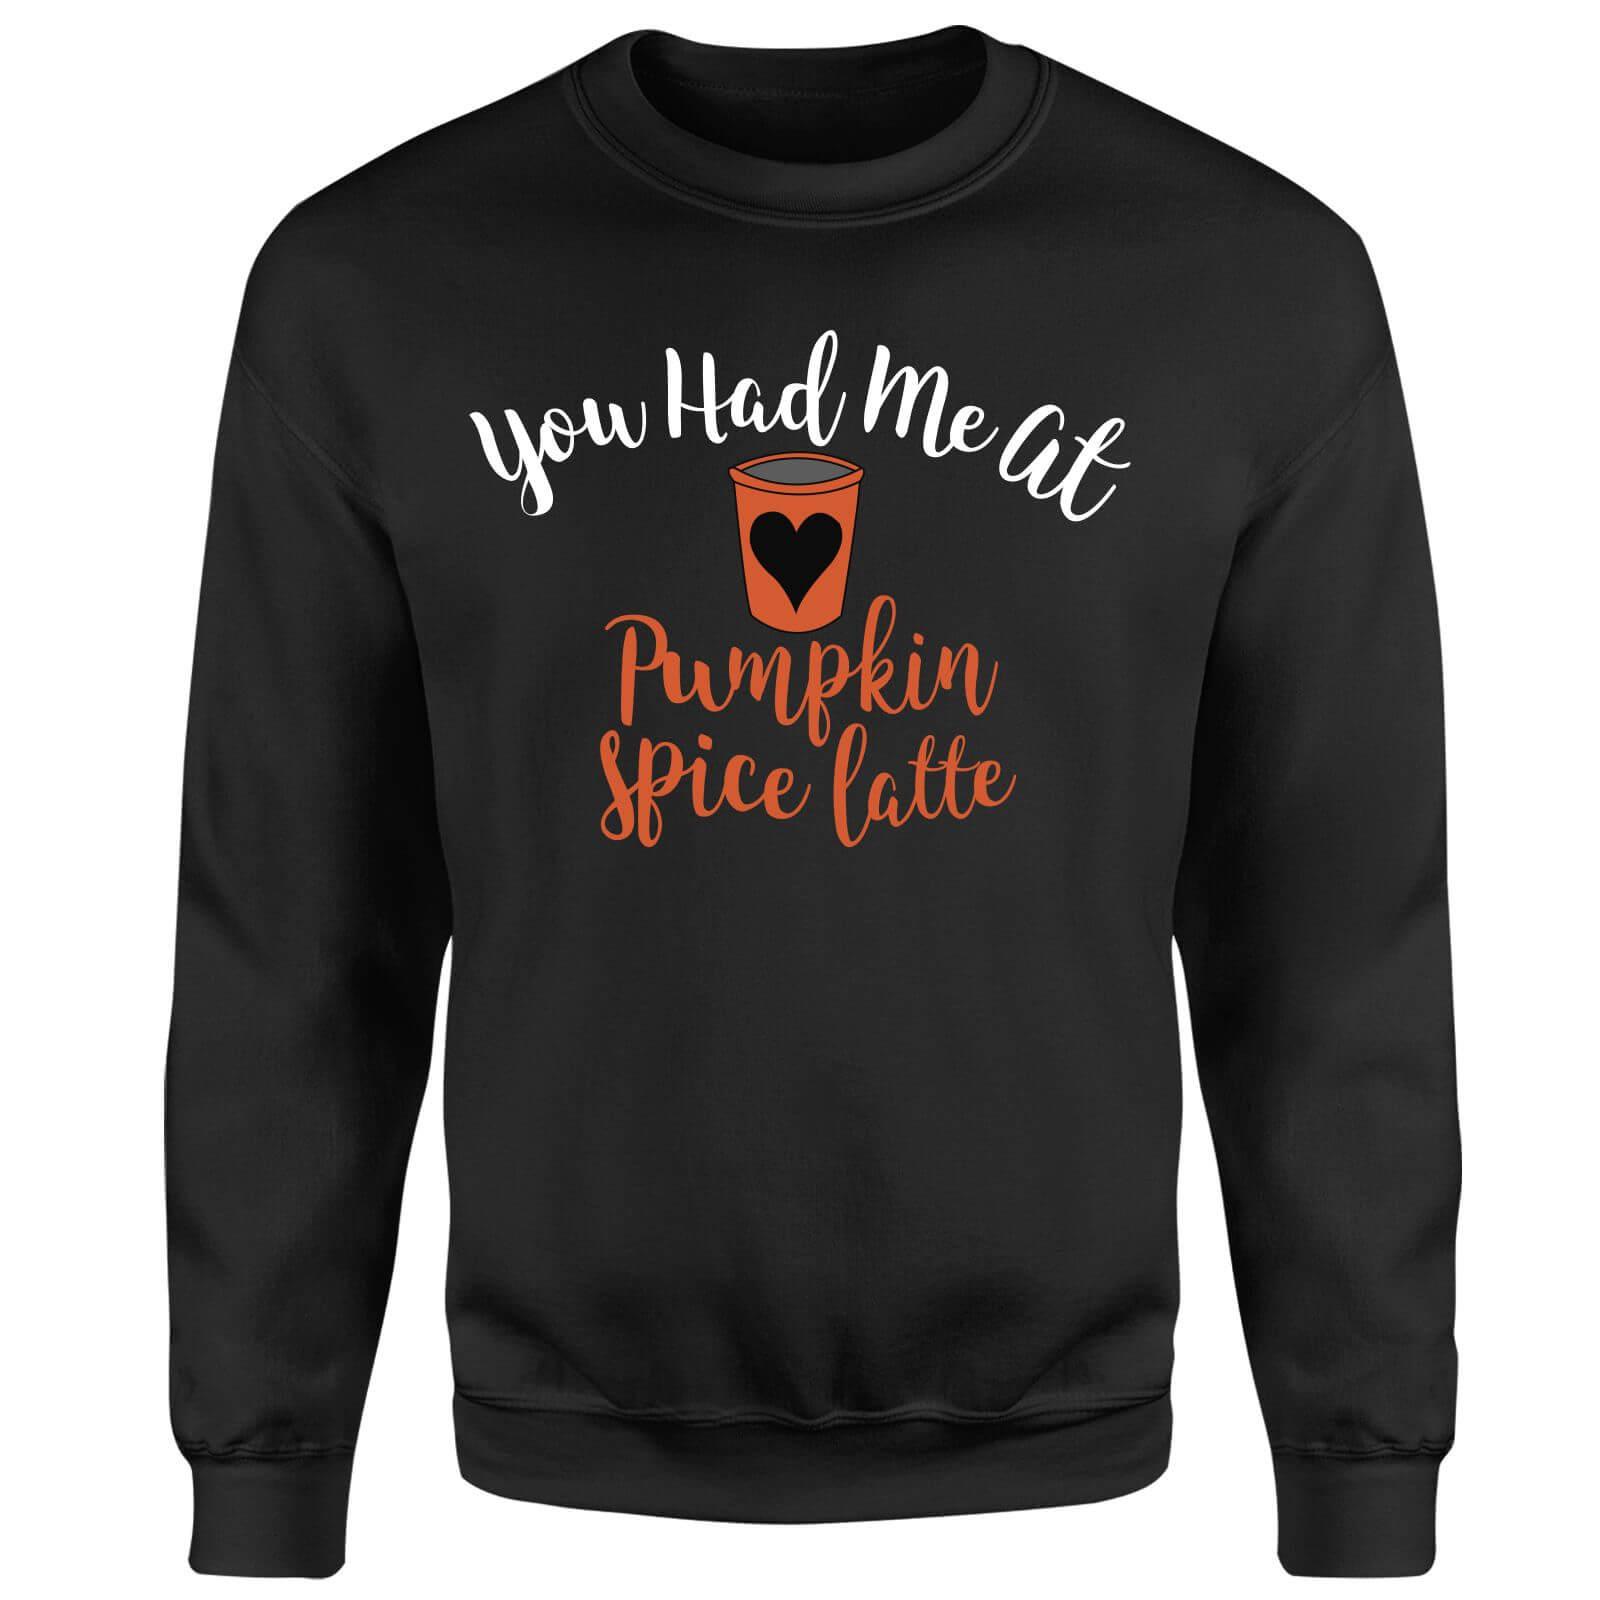 You Had me at Pumpkin Spice Latte Sweatshirt - Black